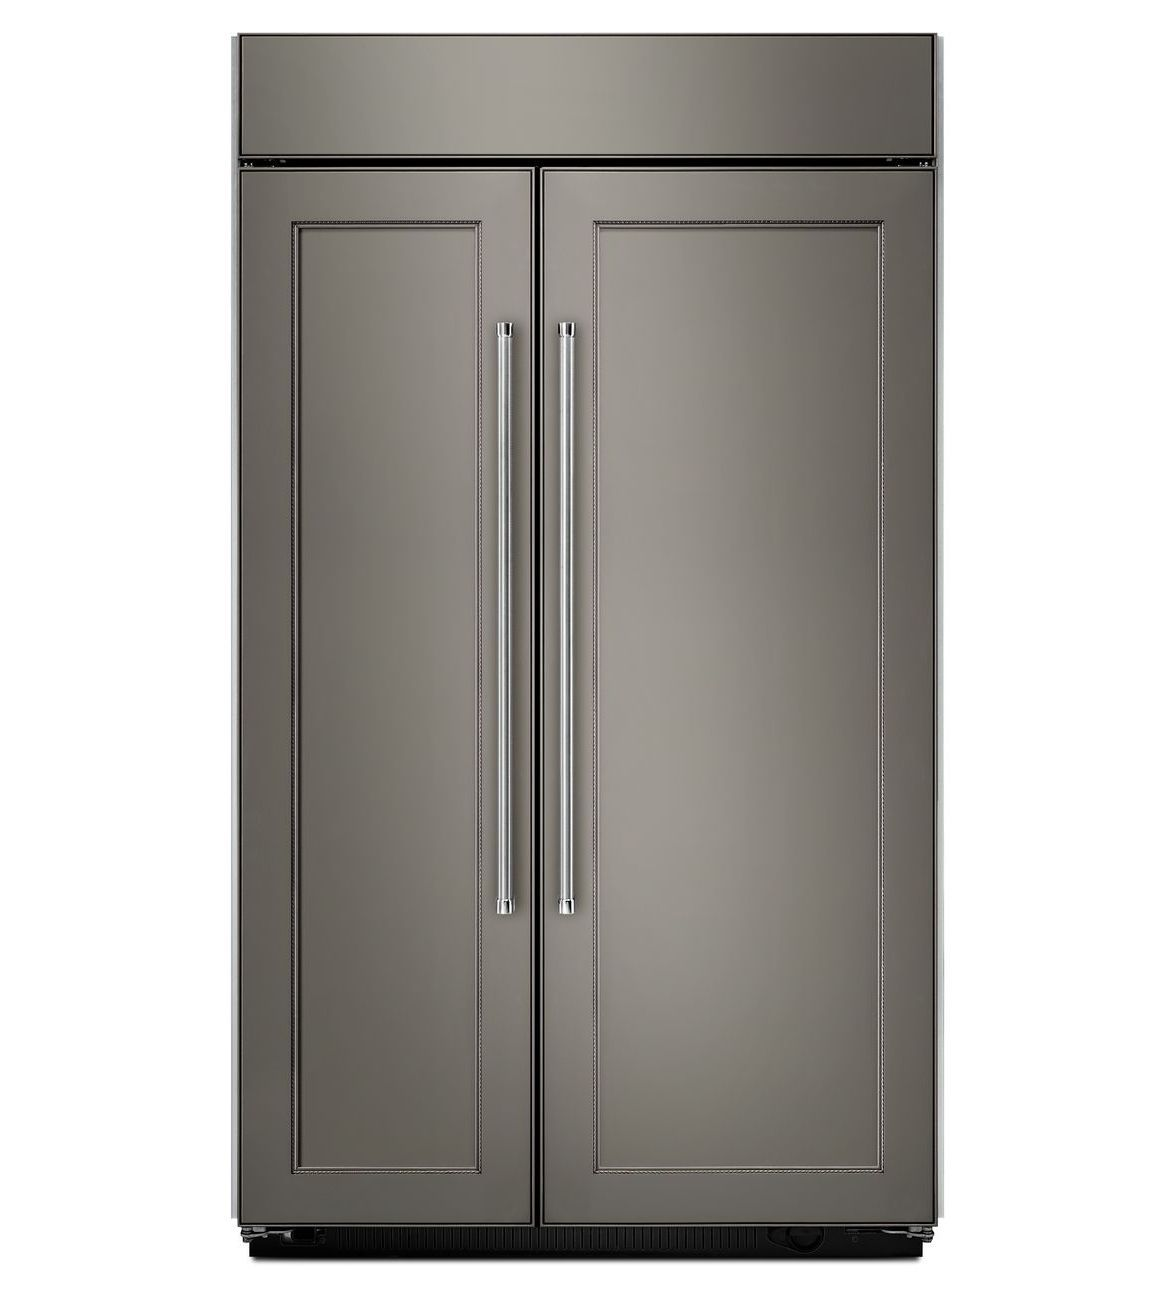 42571b90c691af296a641c3ecc4e0cb8 Kitchenaid - 29.5 Cu. Ft. Side-by-side Built-in Refrigerator - Stainless Steel